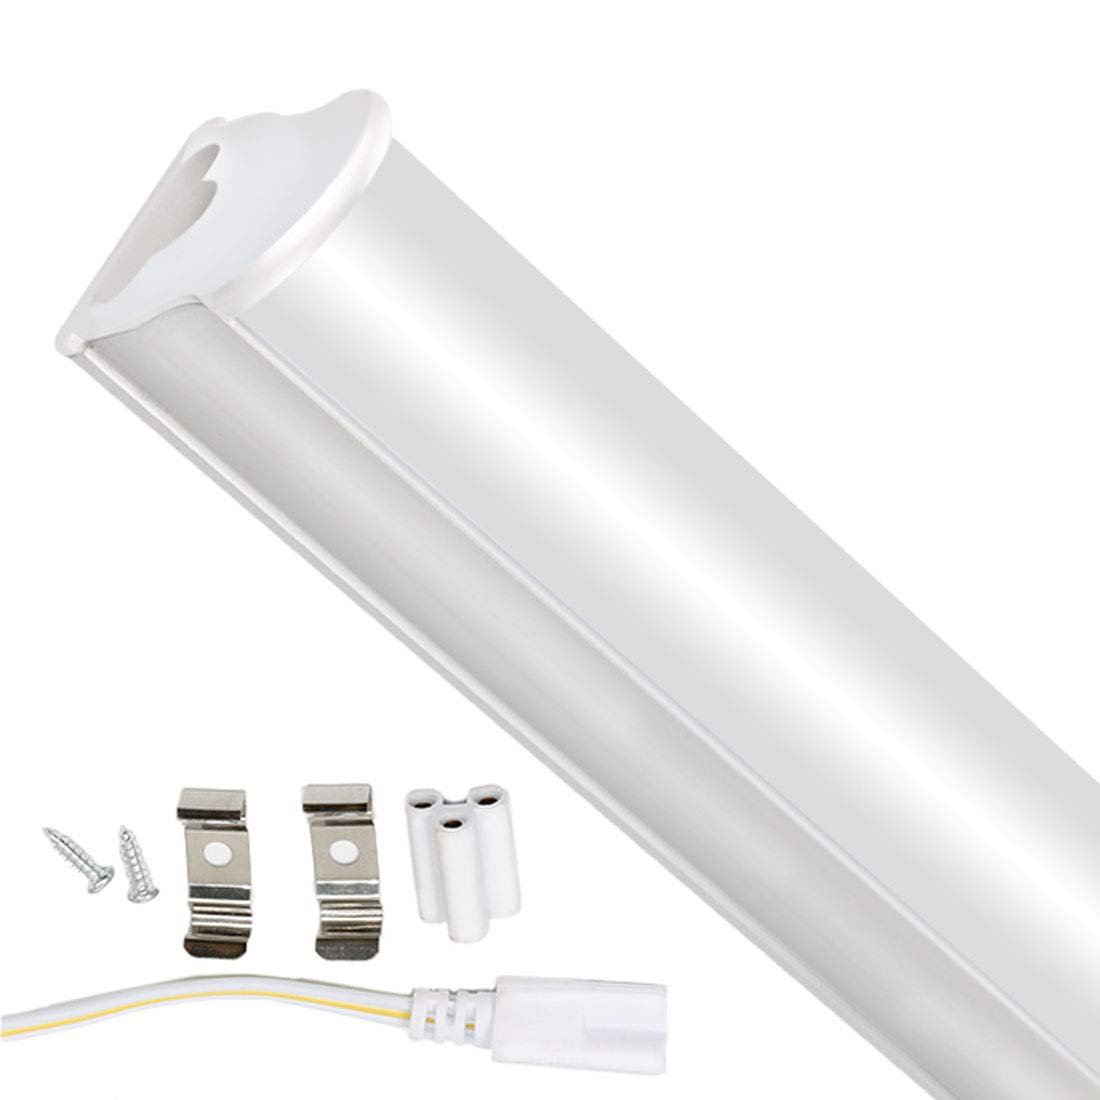 3FT LED Fluorescent Tube T5 Tube Lamp Light Bar 3000K Energy Saving Lamps Office Lighting Indoor Lighting Cabinet Lights for Garage Conference Room School Hospital Restaurants Hotels 15W 1125LM 1pc XYD